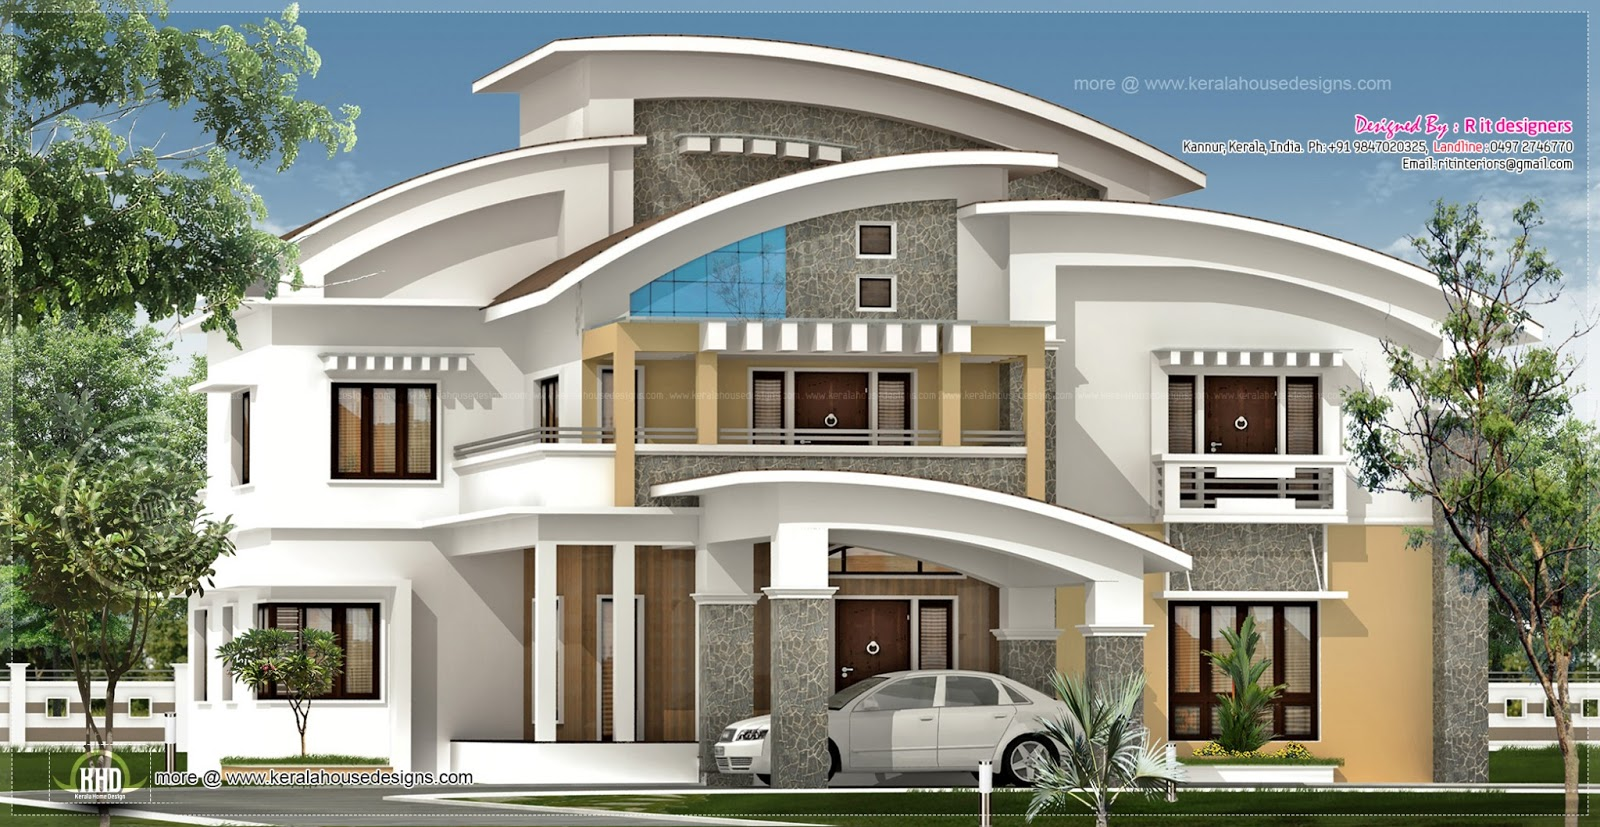 3750 square feet luxury villa exterior house design plans for Home designs exterior